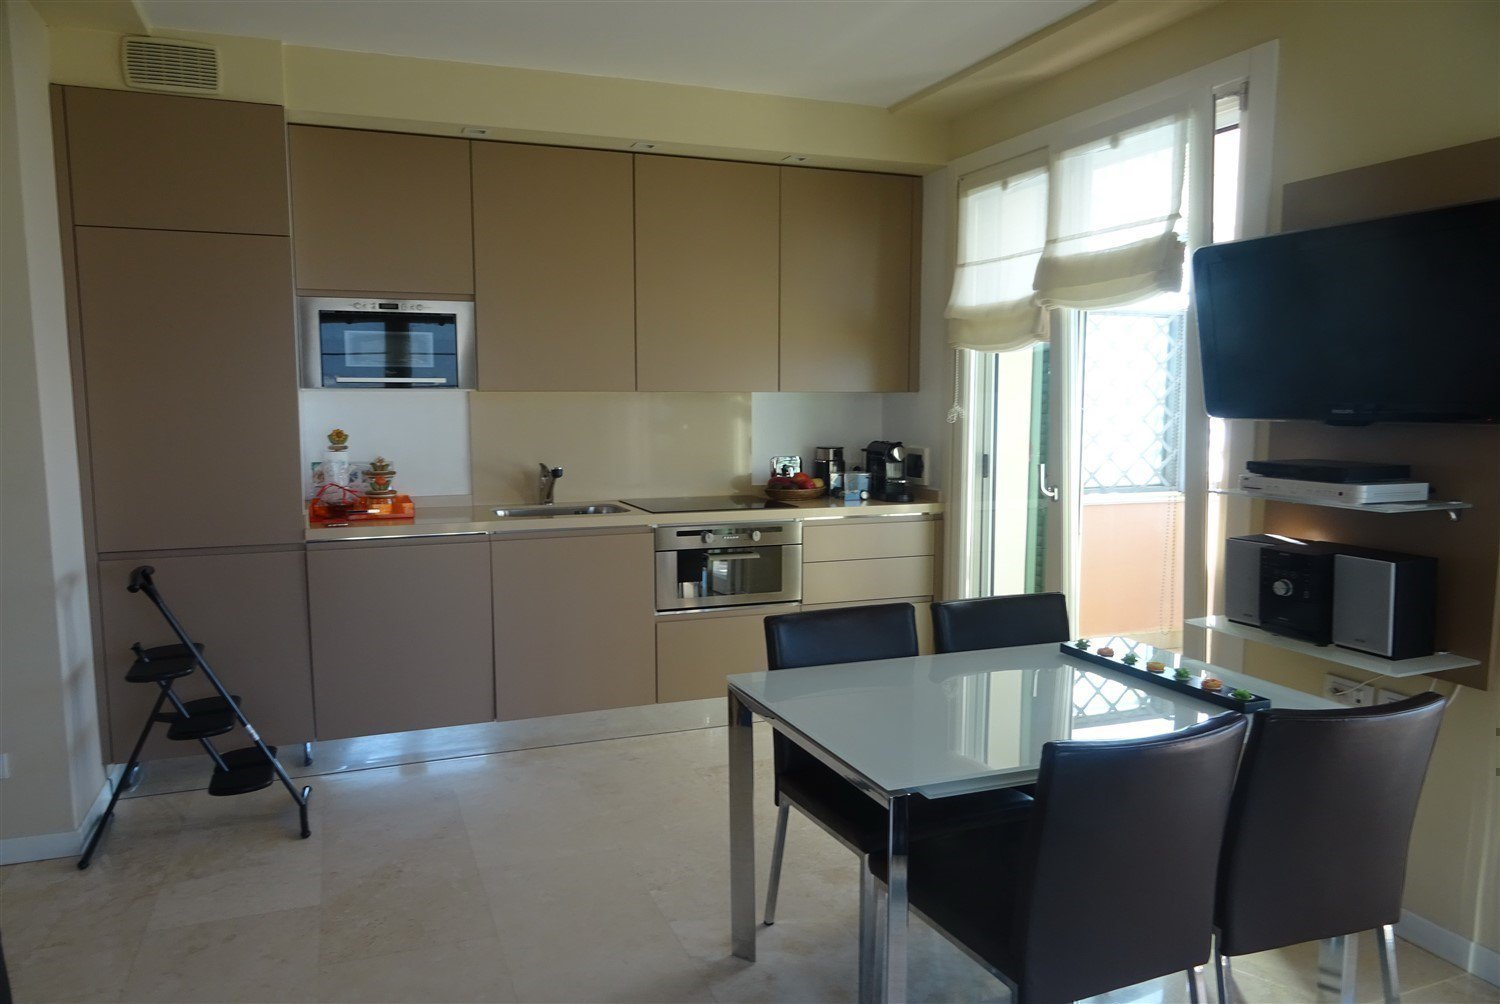 Dream apartment for sale in Sanremo sea-large kitchen